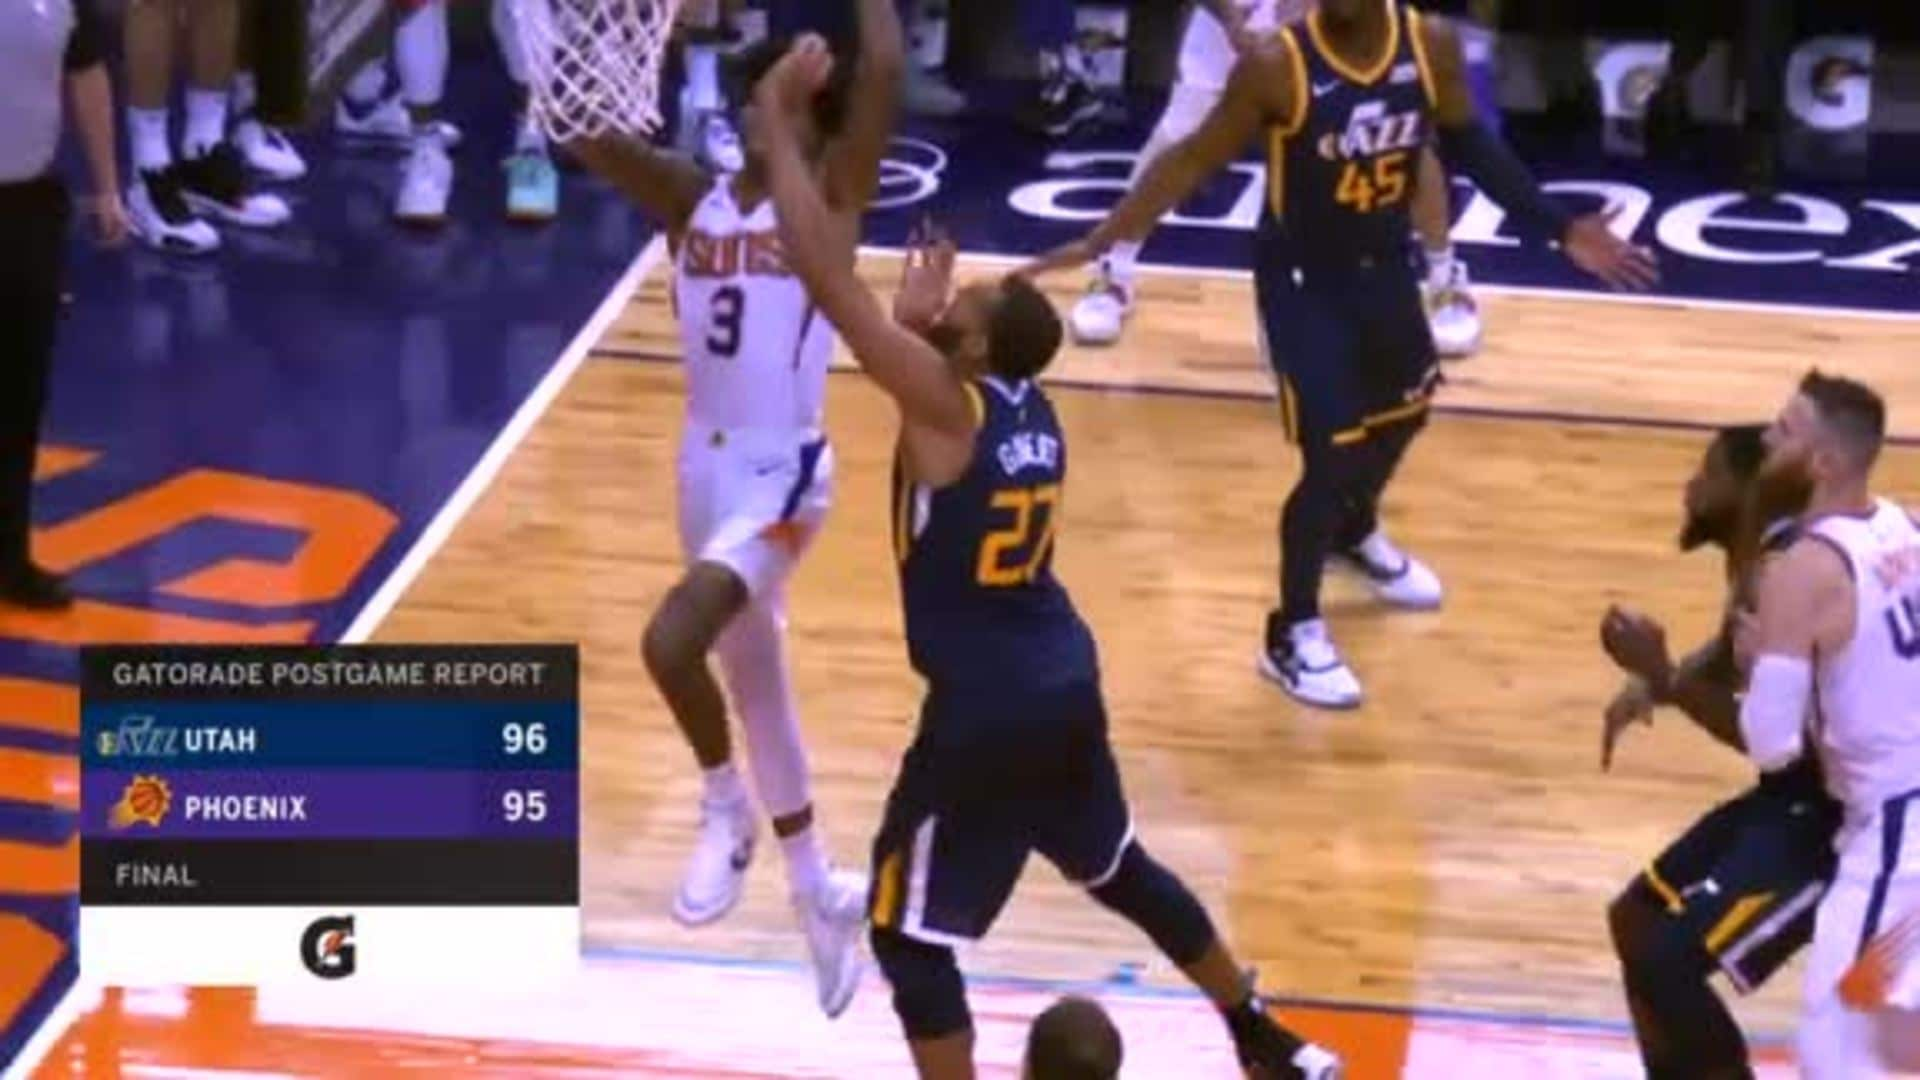 Gatorade Postgame Report: Suns vs. Jazz 2018-19